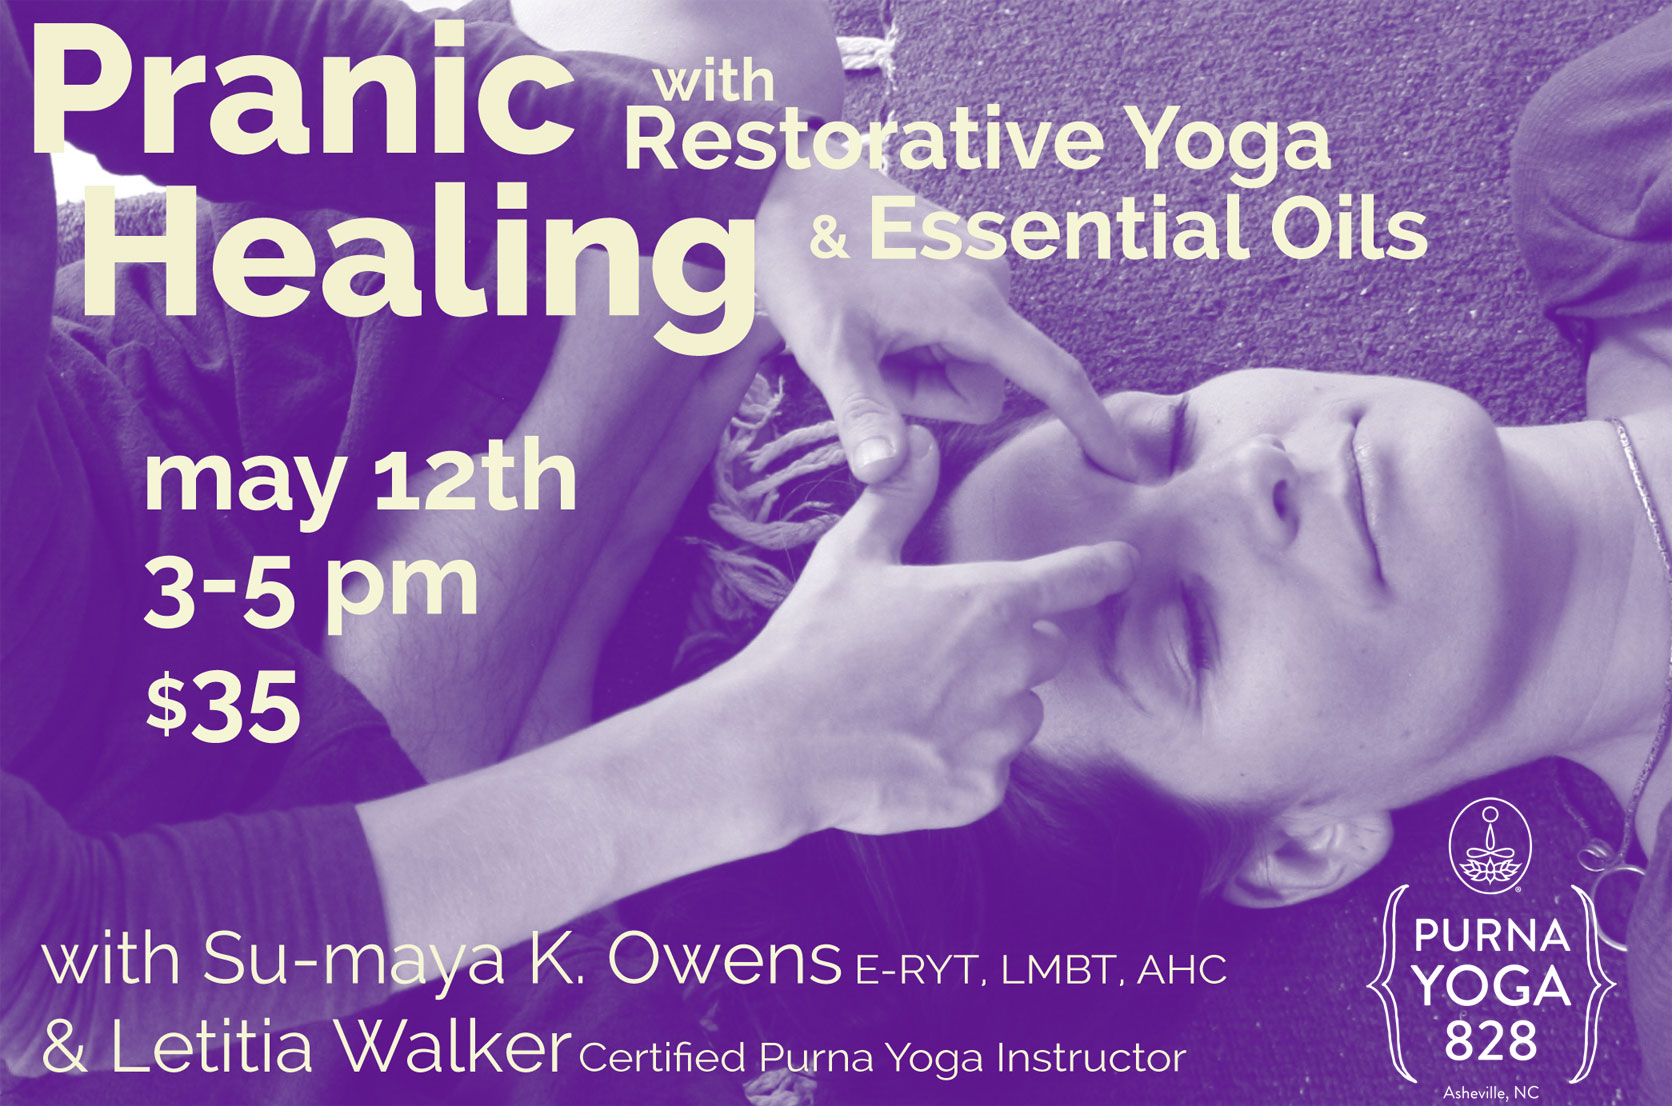 Pranic Healing Restorative Yoga Workshop | Live Yoga Now